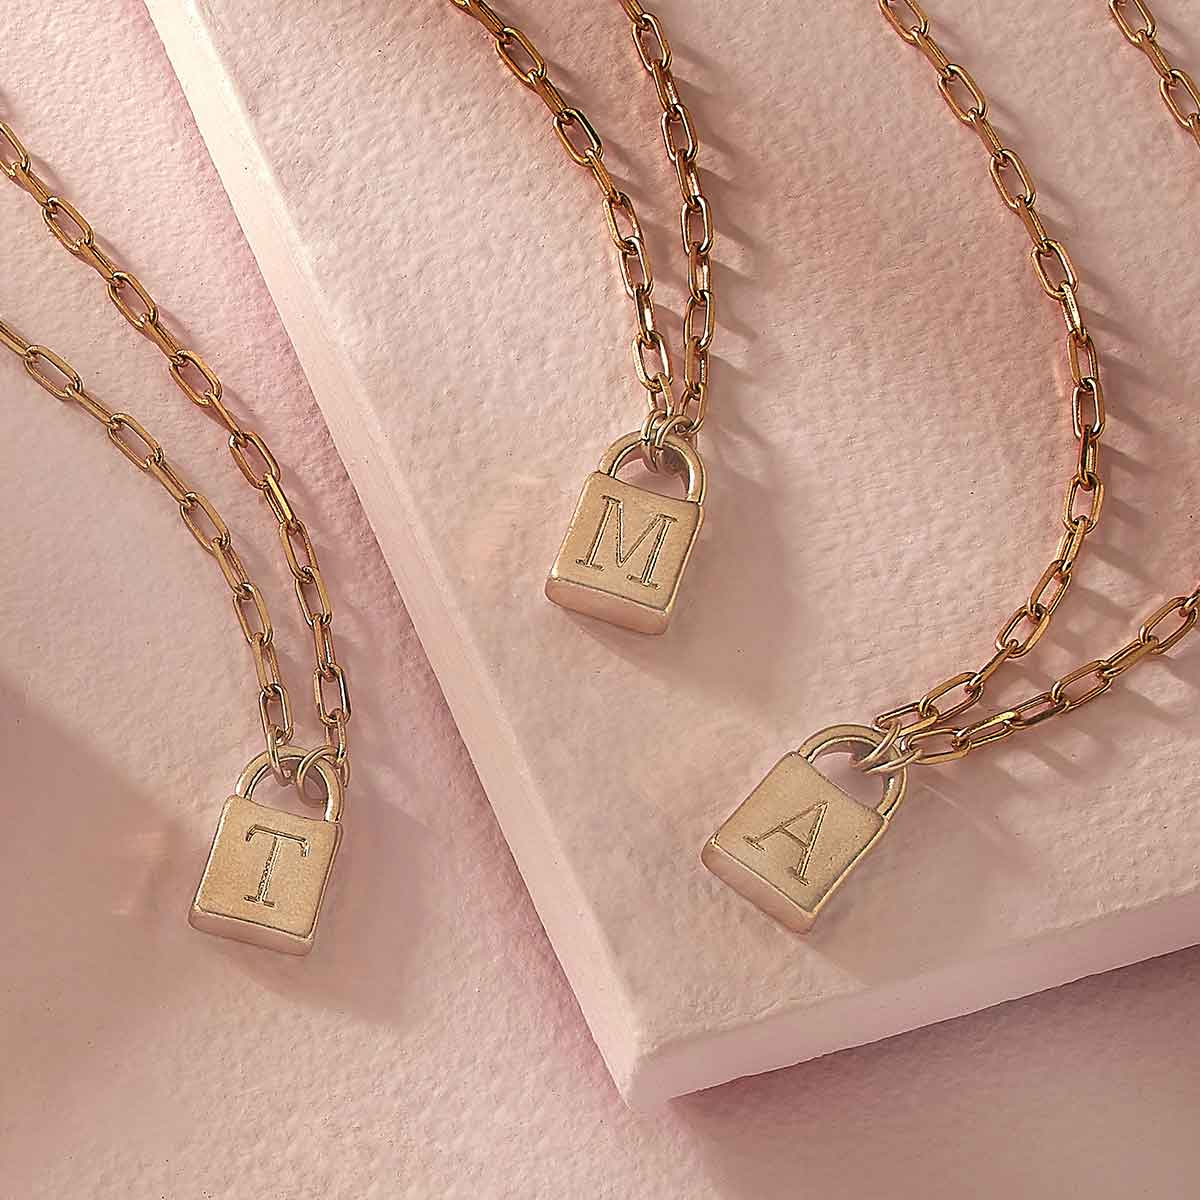 Kinsley Padlock Initial Necklace in Worn Gold | Available in 12 Different Letters